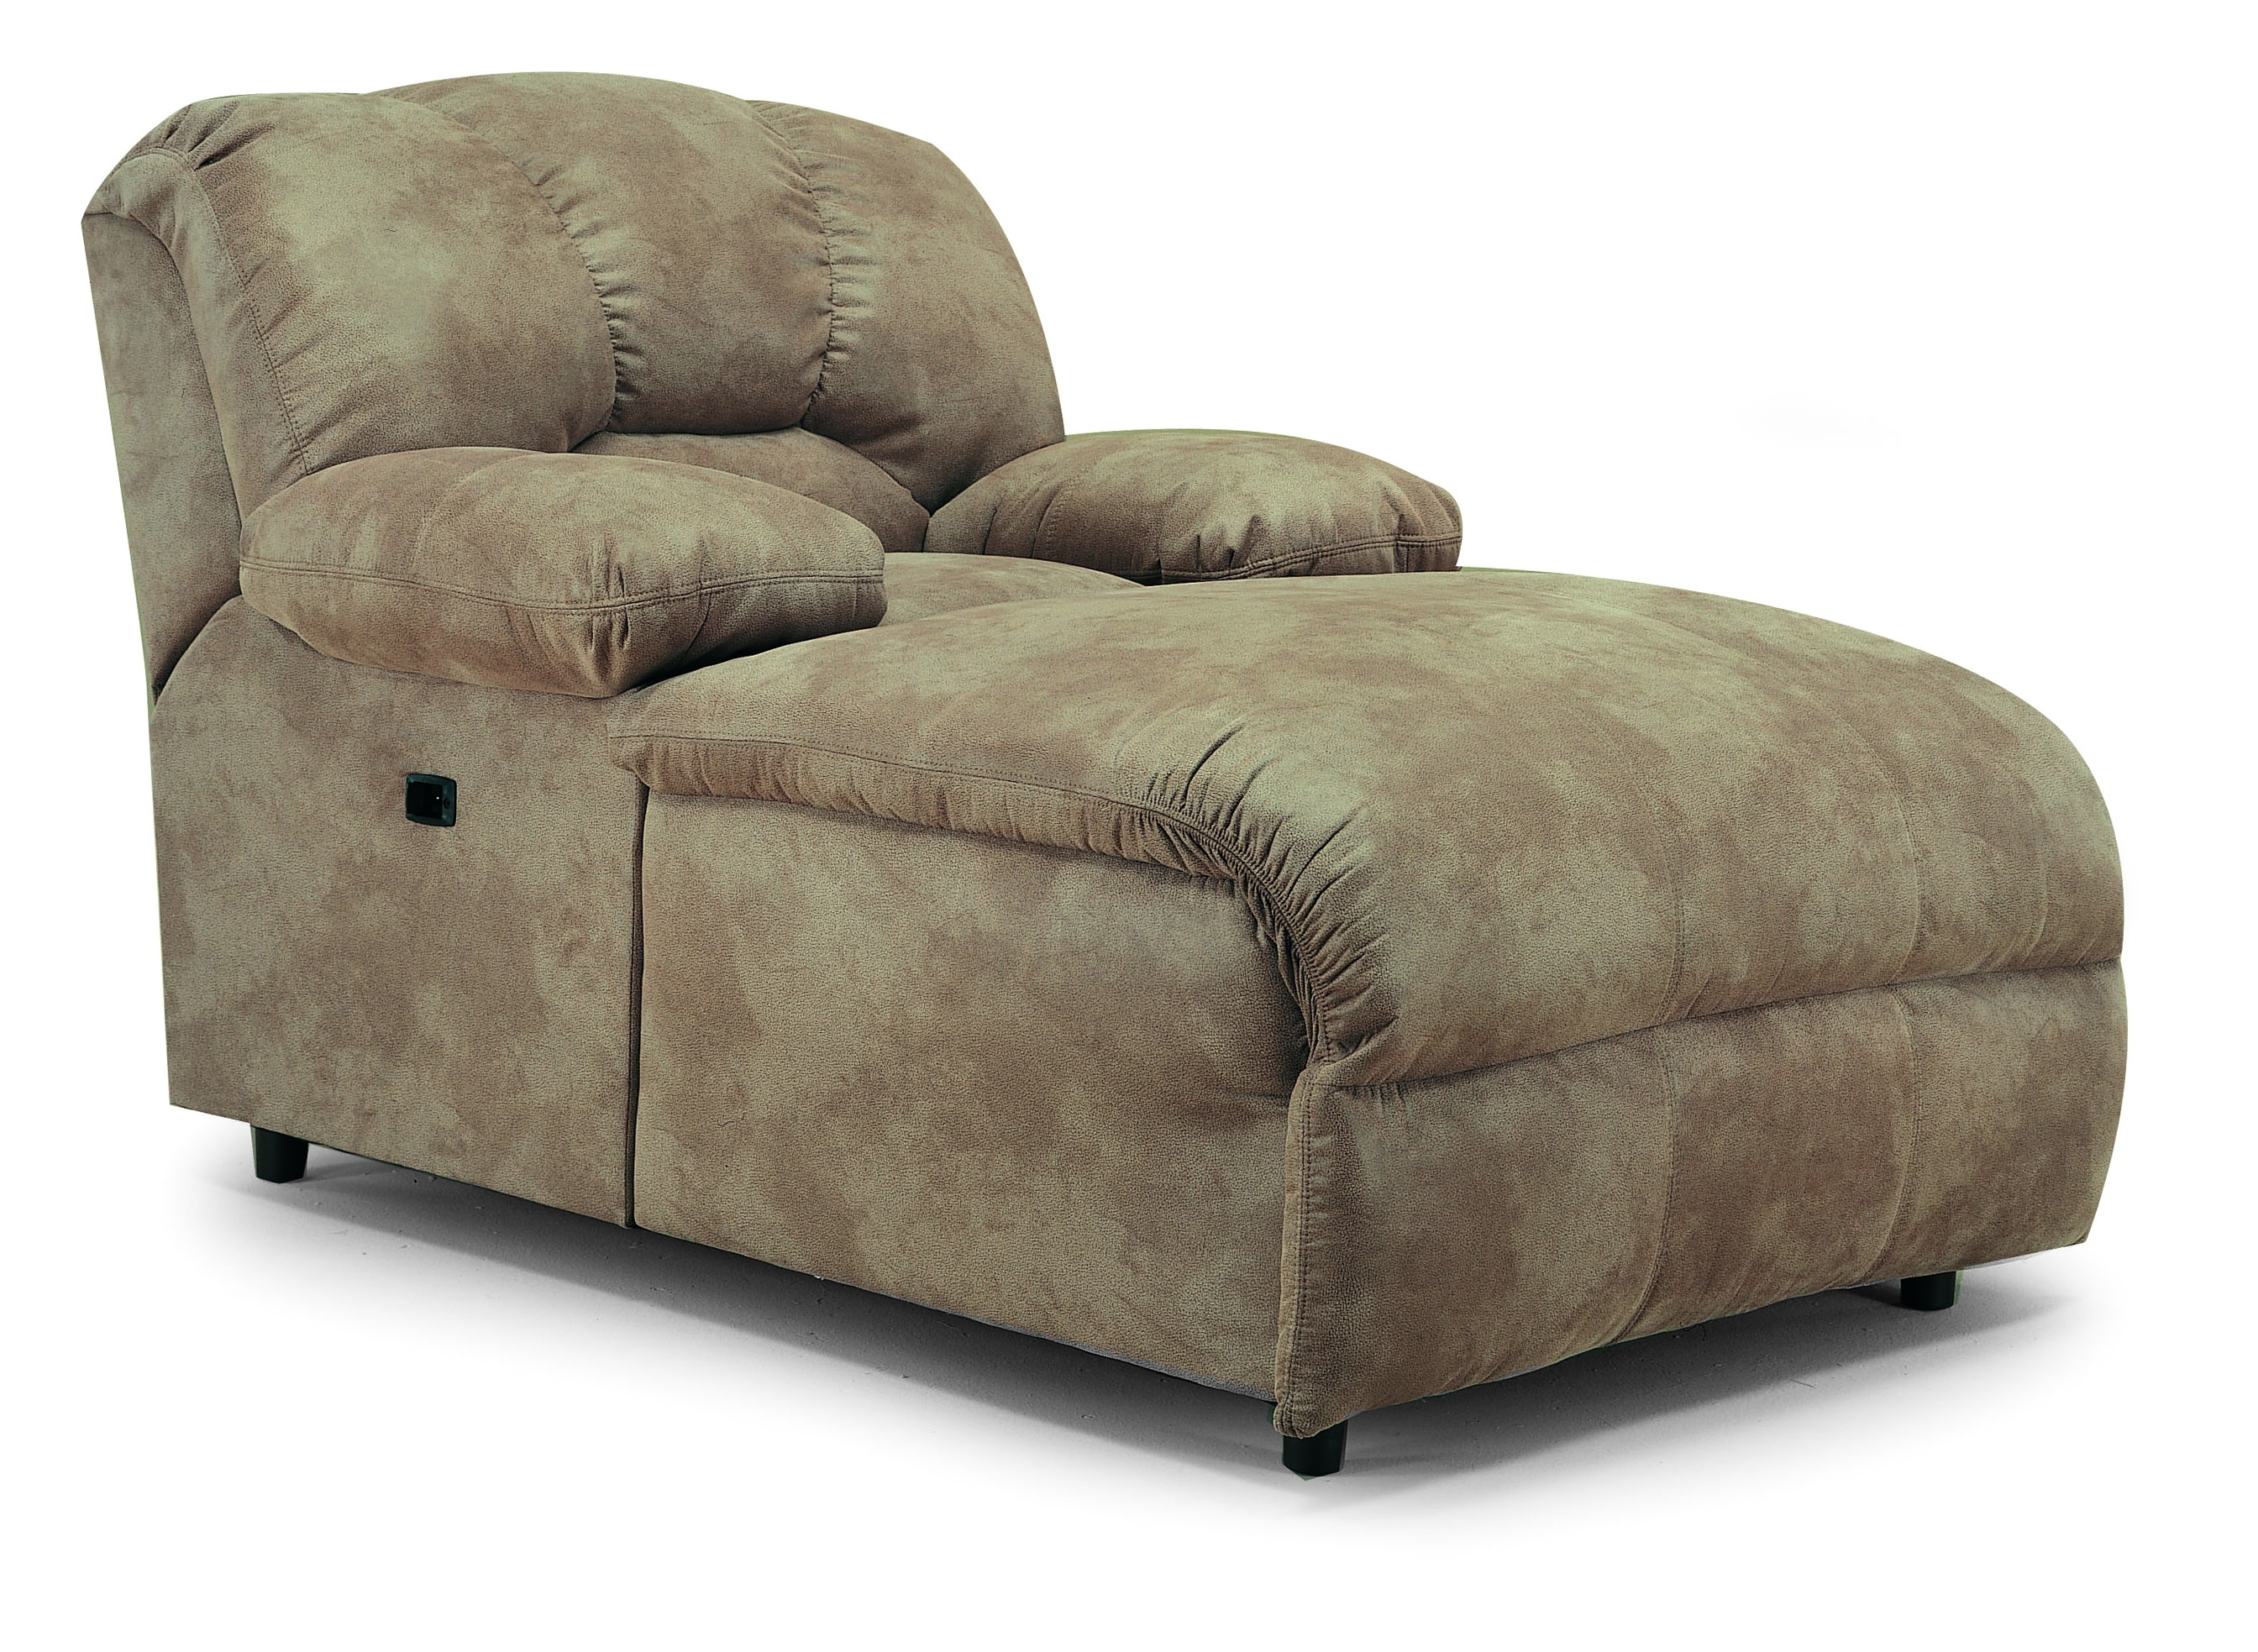 Widely Used Popular Of Reclining Chaise Lounge With Recliner Chaise Lounge My Within Chaise Recliners (View 6 of 15)